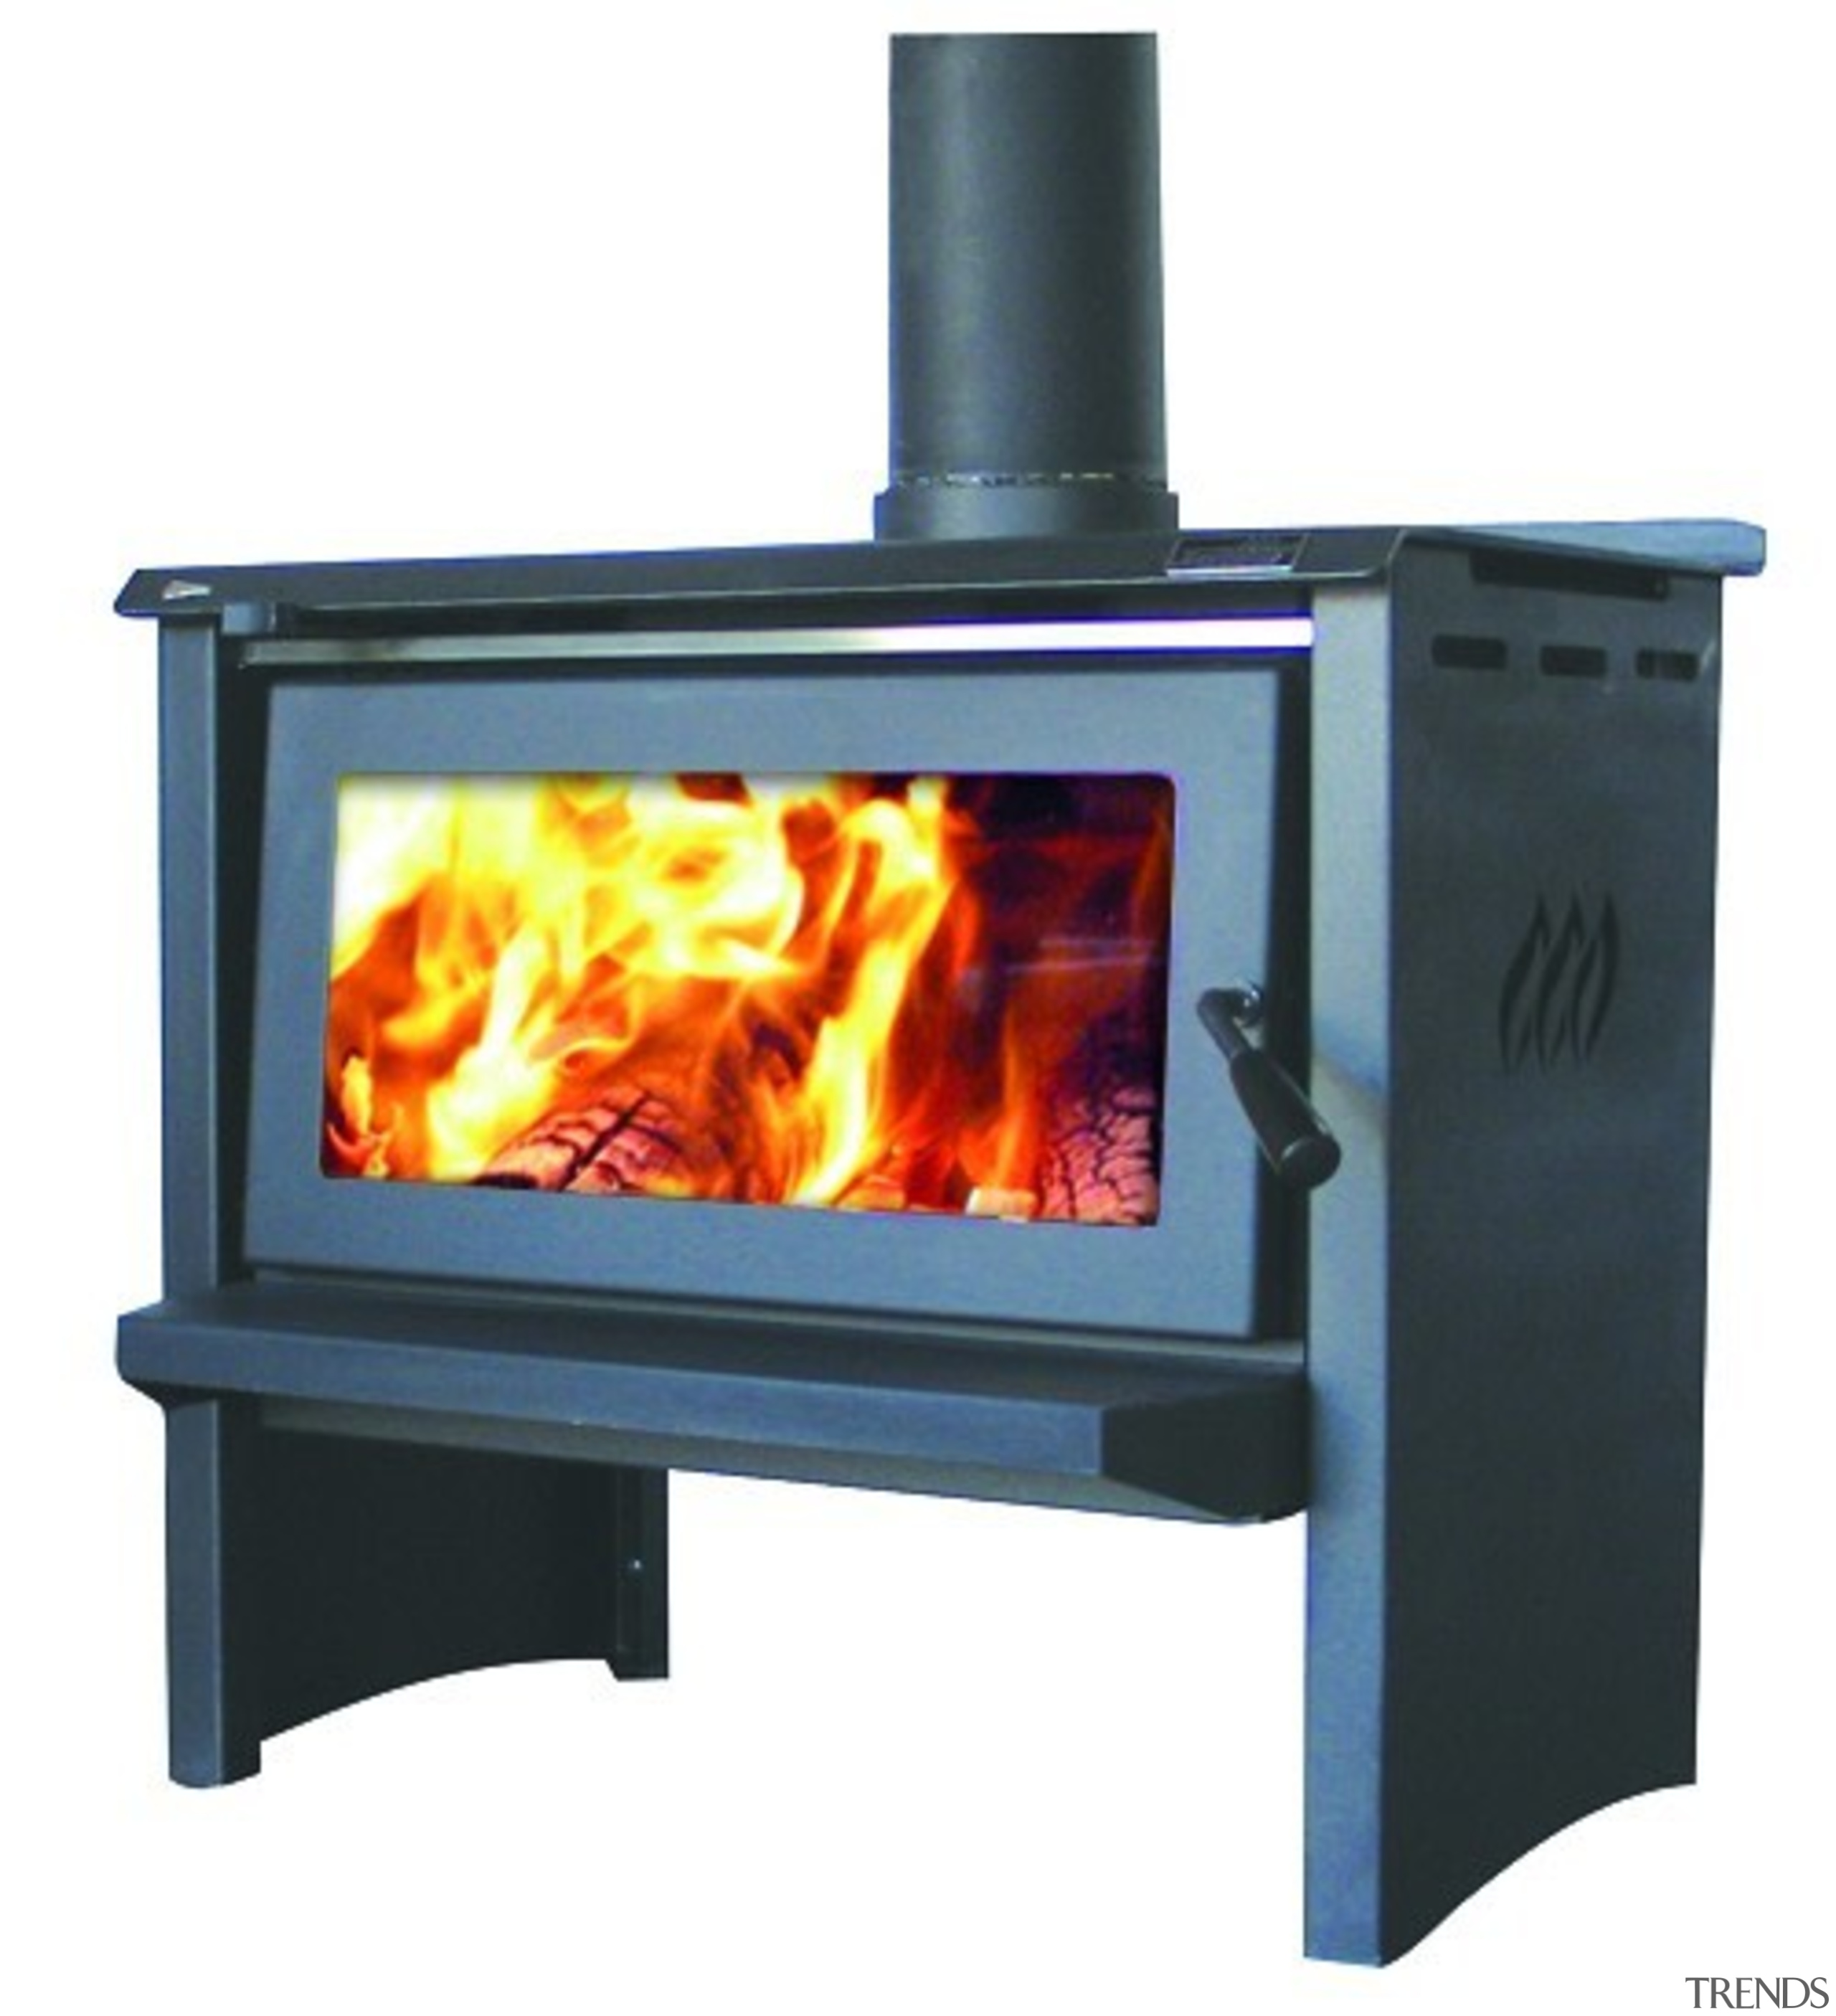 Jayline SS400 19kW Wood Fire - Jayline SS400 hearth, heat, home appliance, product, stove, wood burning stove, white